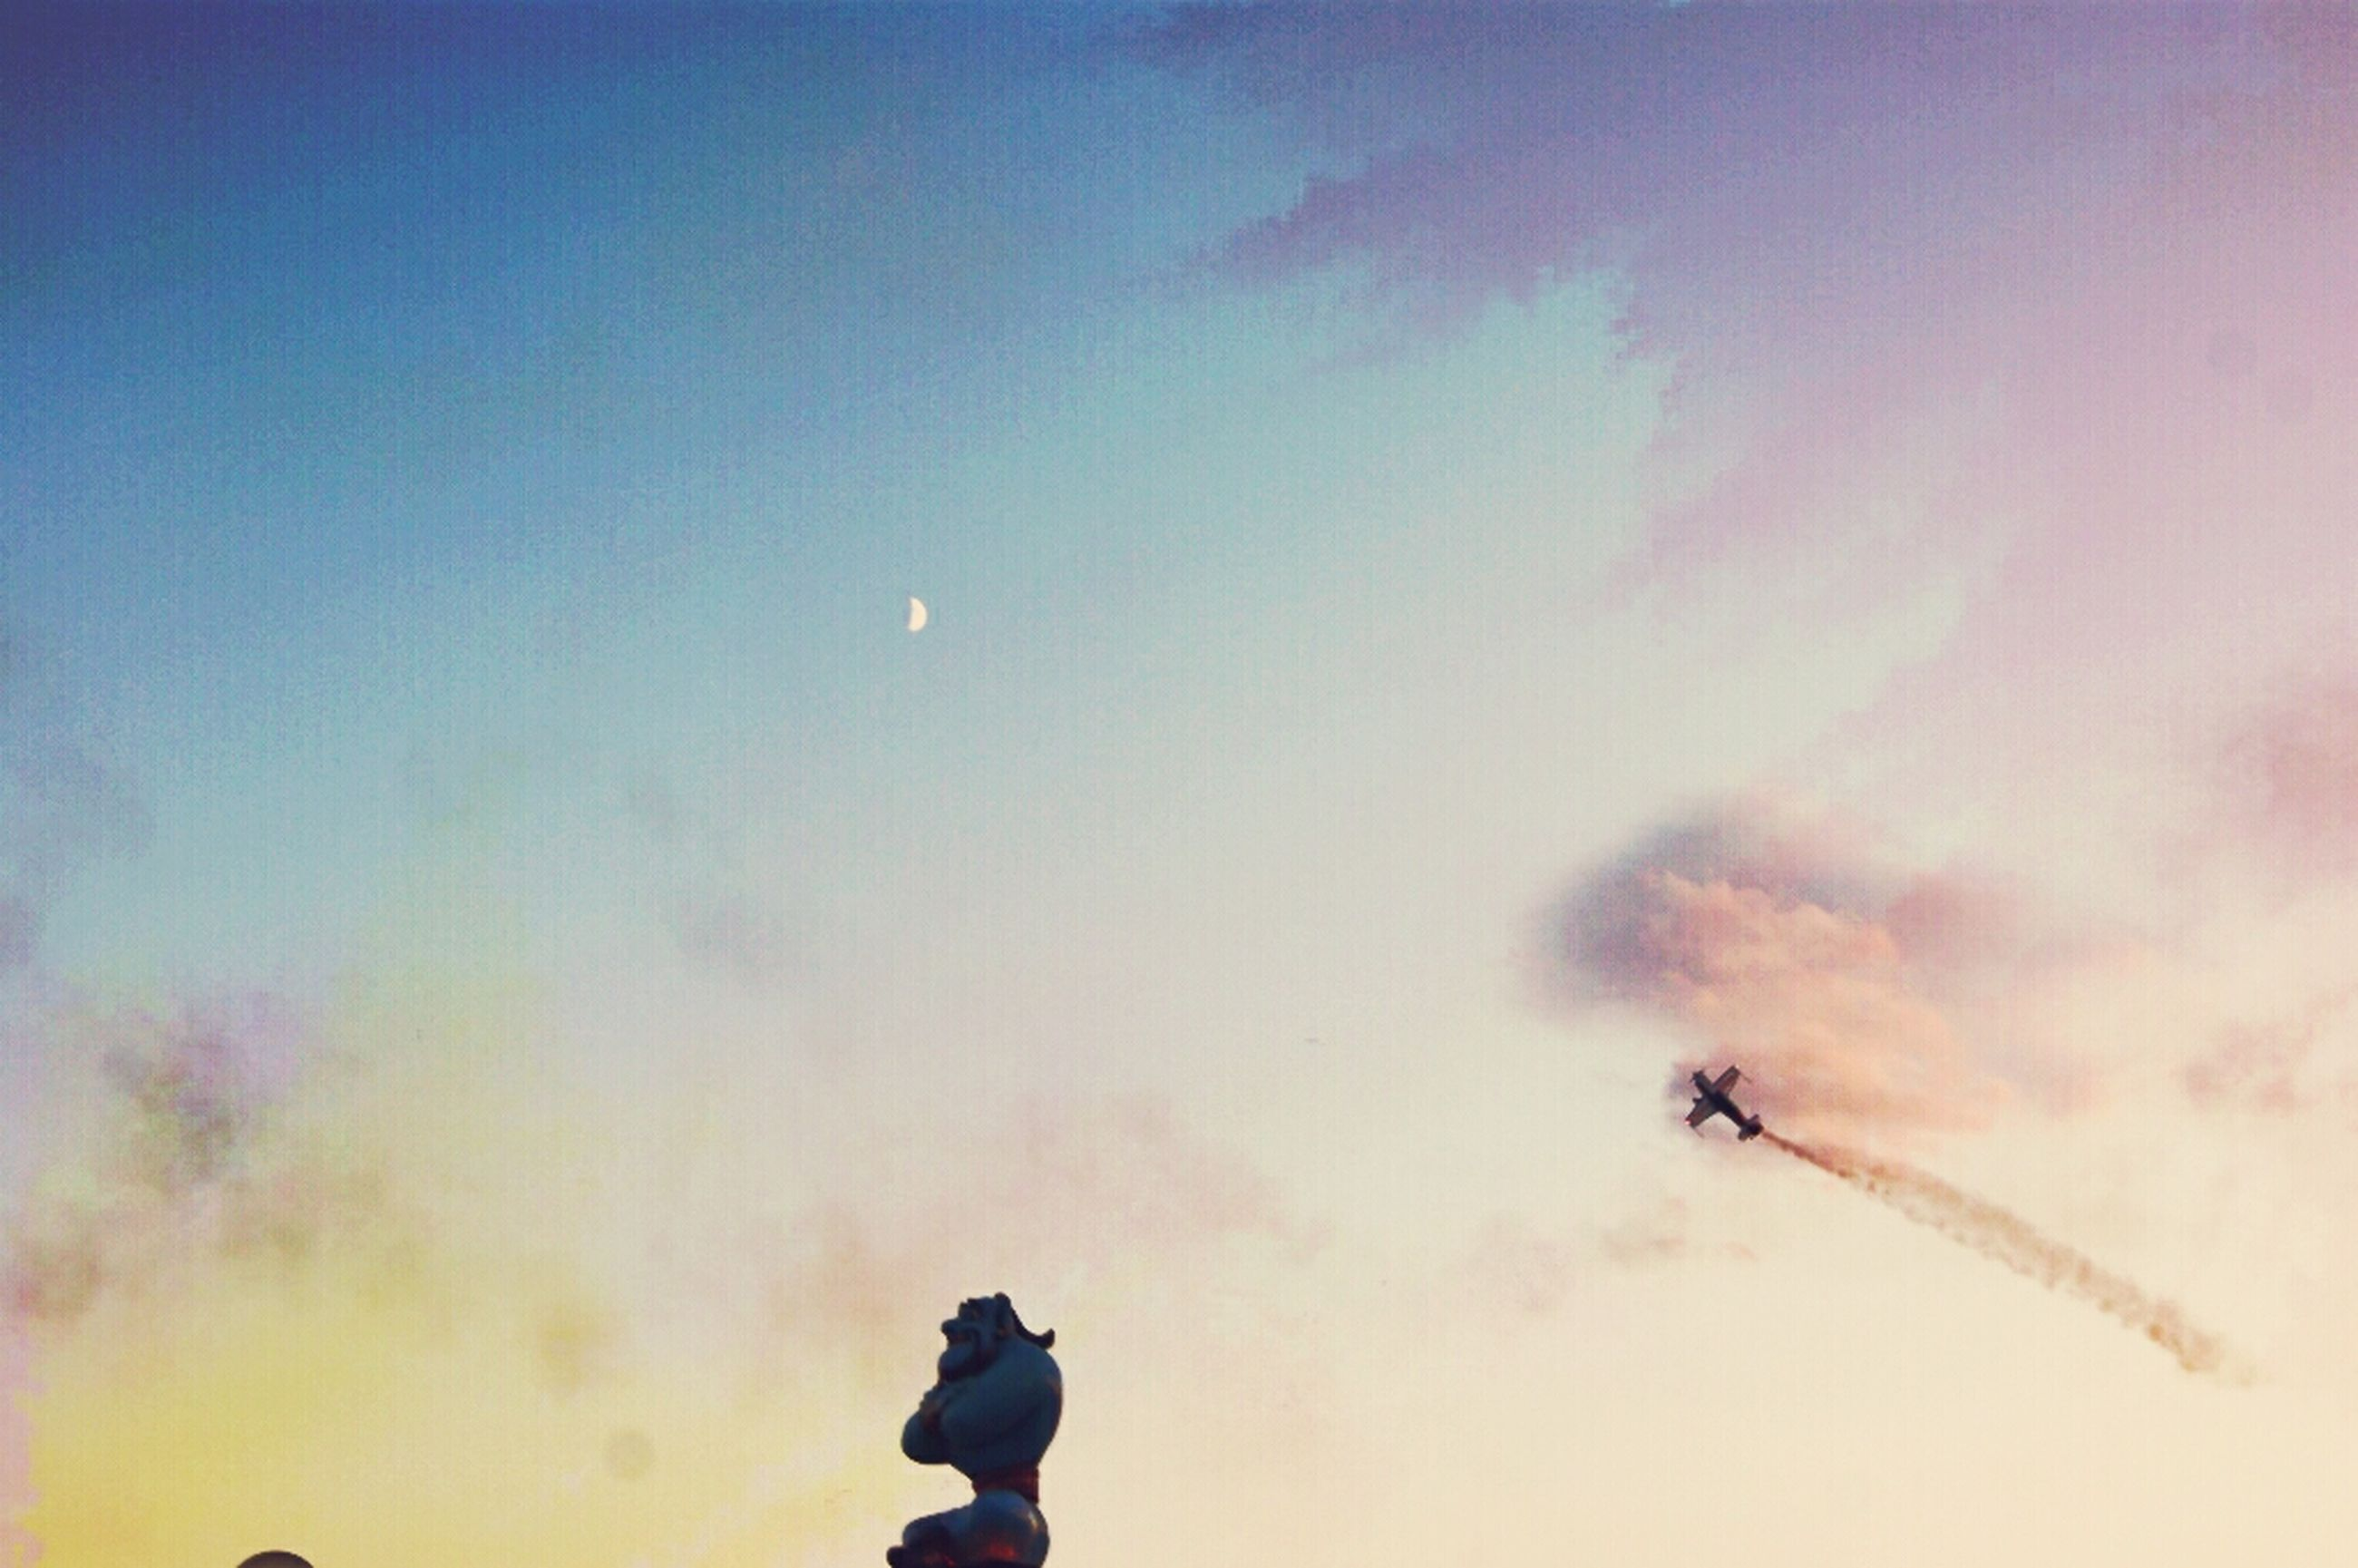 leisure activity, lifestyles, men, sky, low angle view, silhouette, unrecognizable person, adventure, sunset, fun, outdoors, cloud - sky, dusk, mid-air, extreme sports, enjoyment, nature, standing